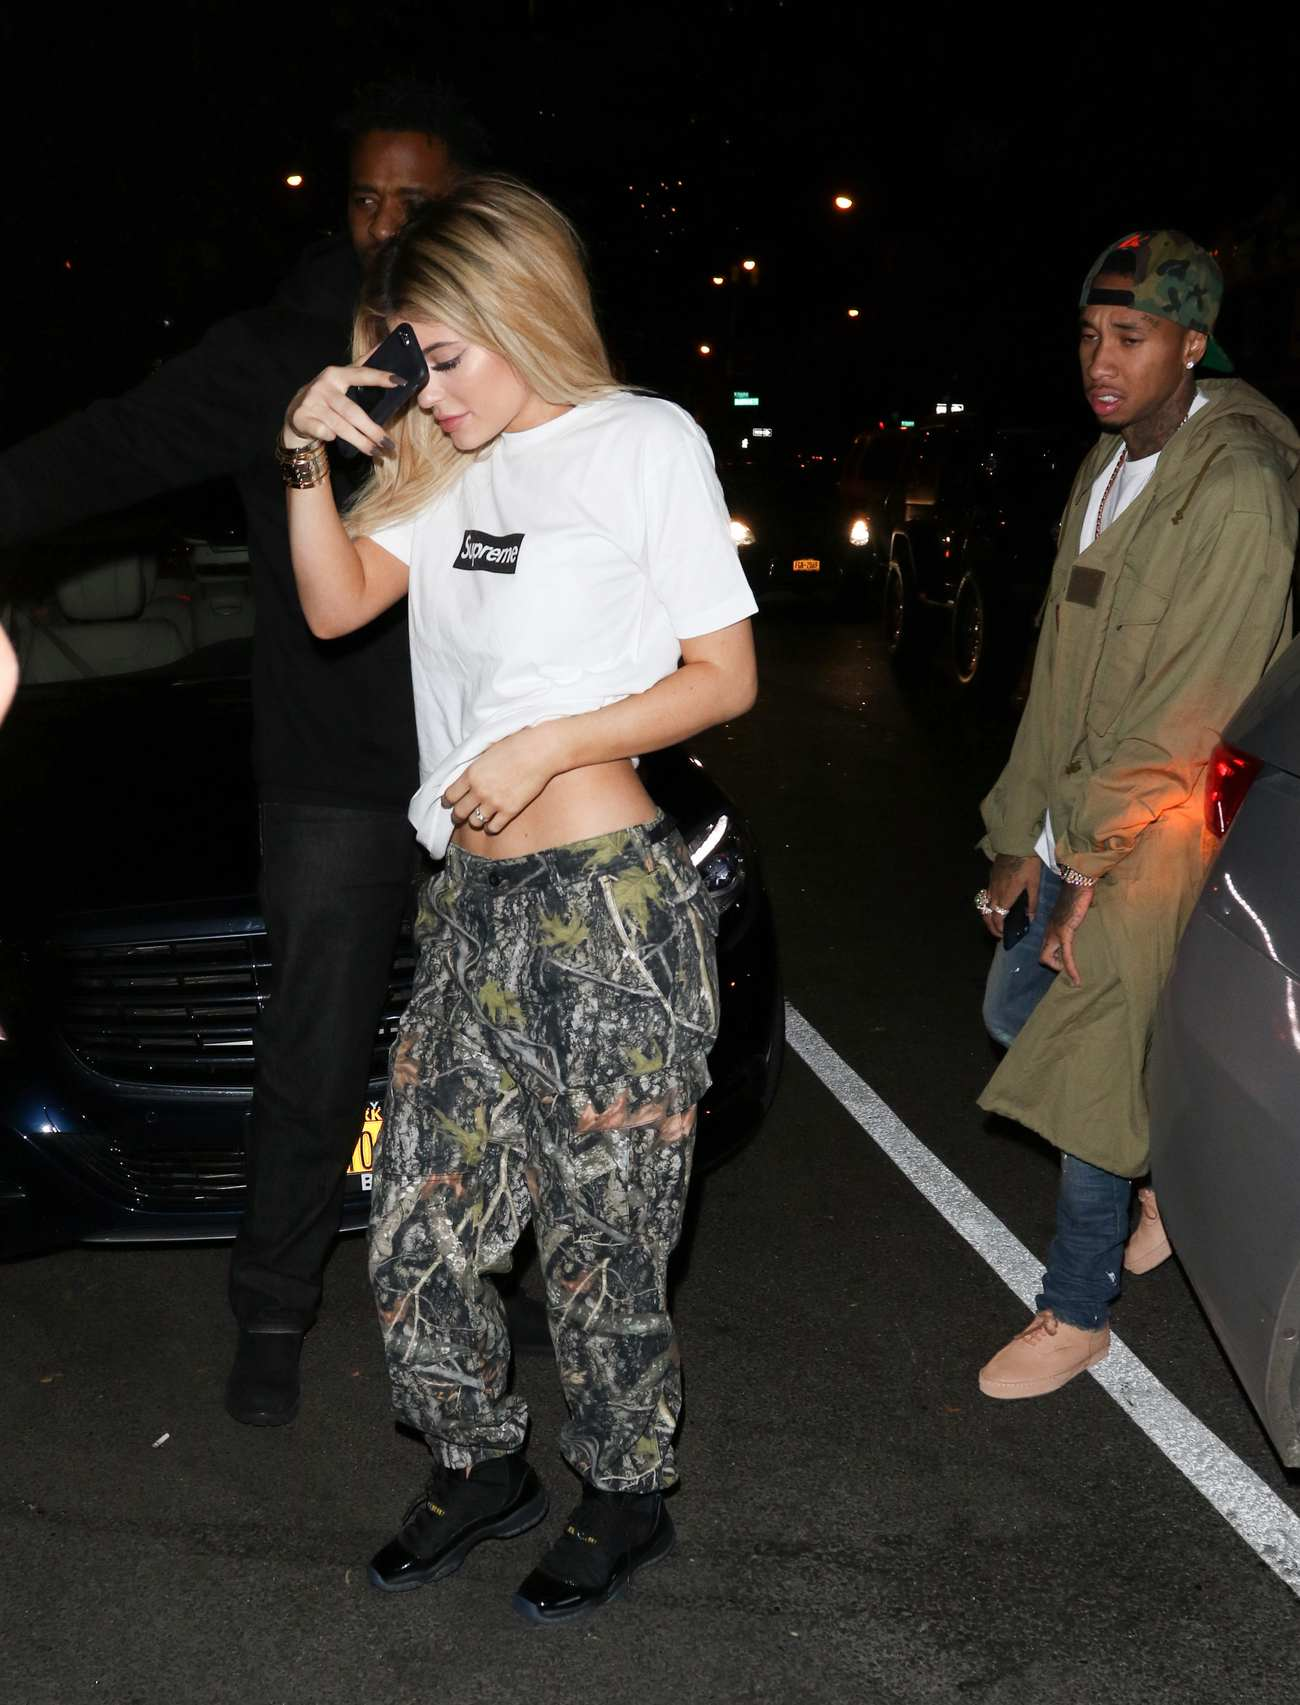 Kylie Jenner and Tyga Arrive at LAX Airport-1